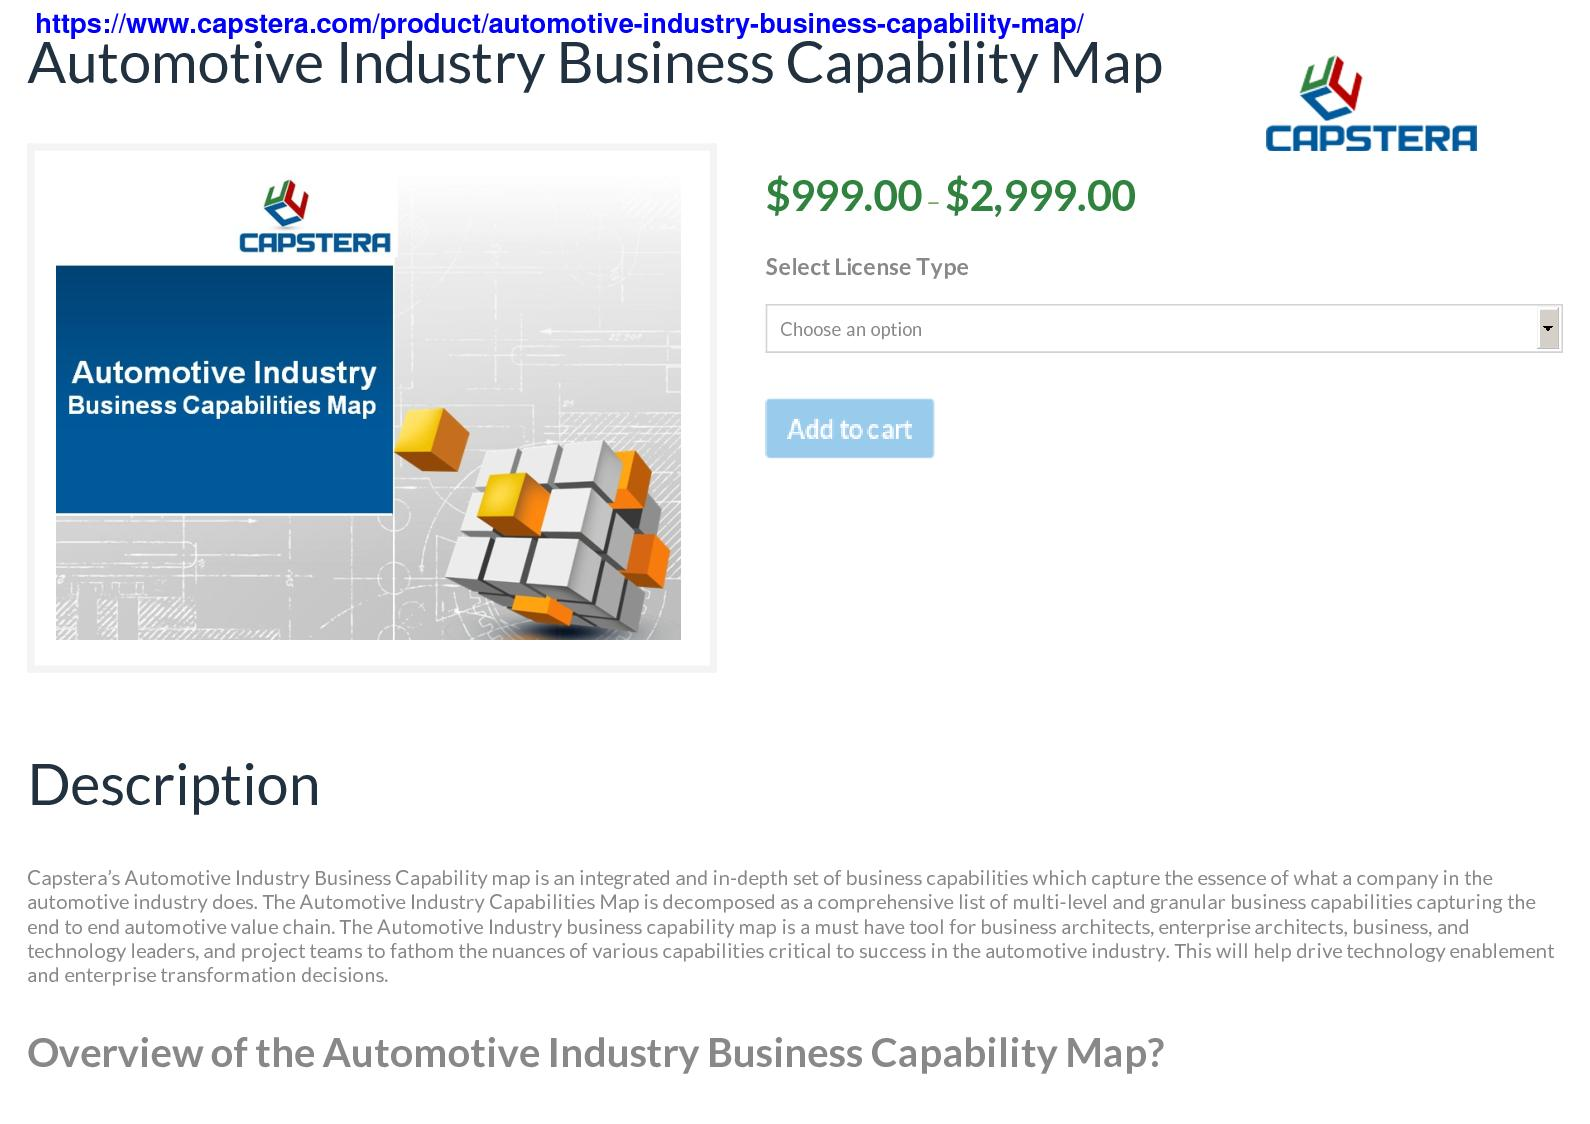 Calaméo - Automotive industry business capability map